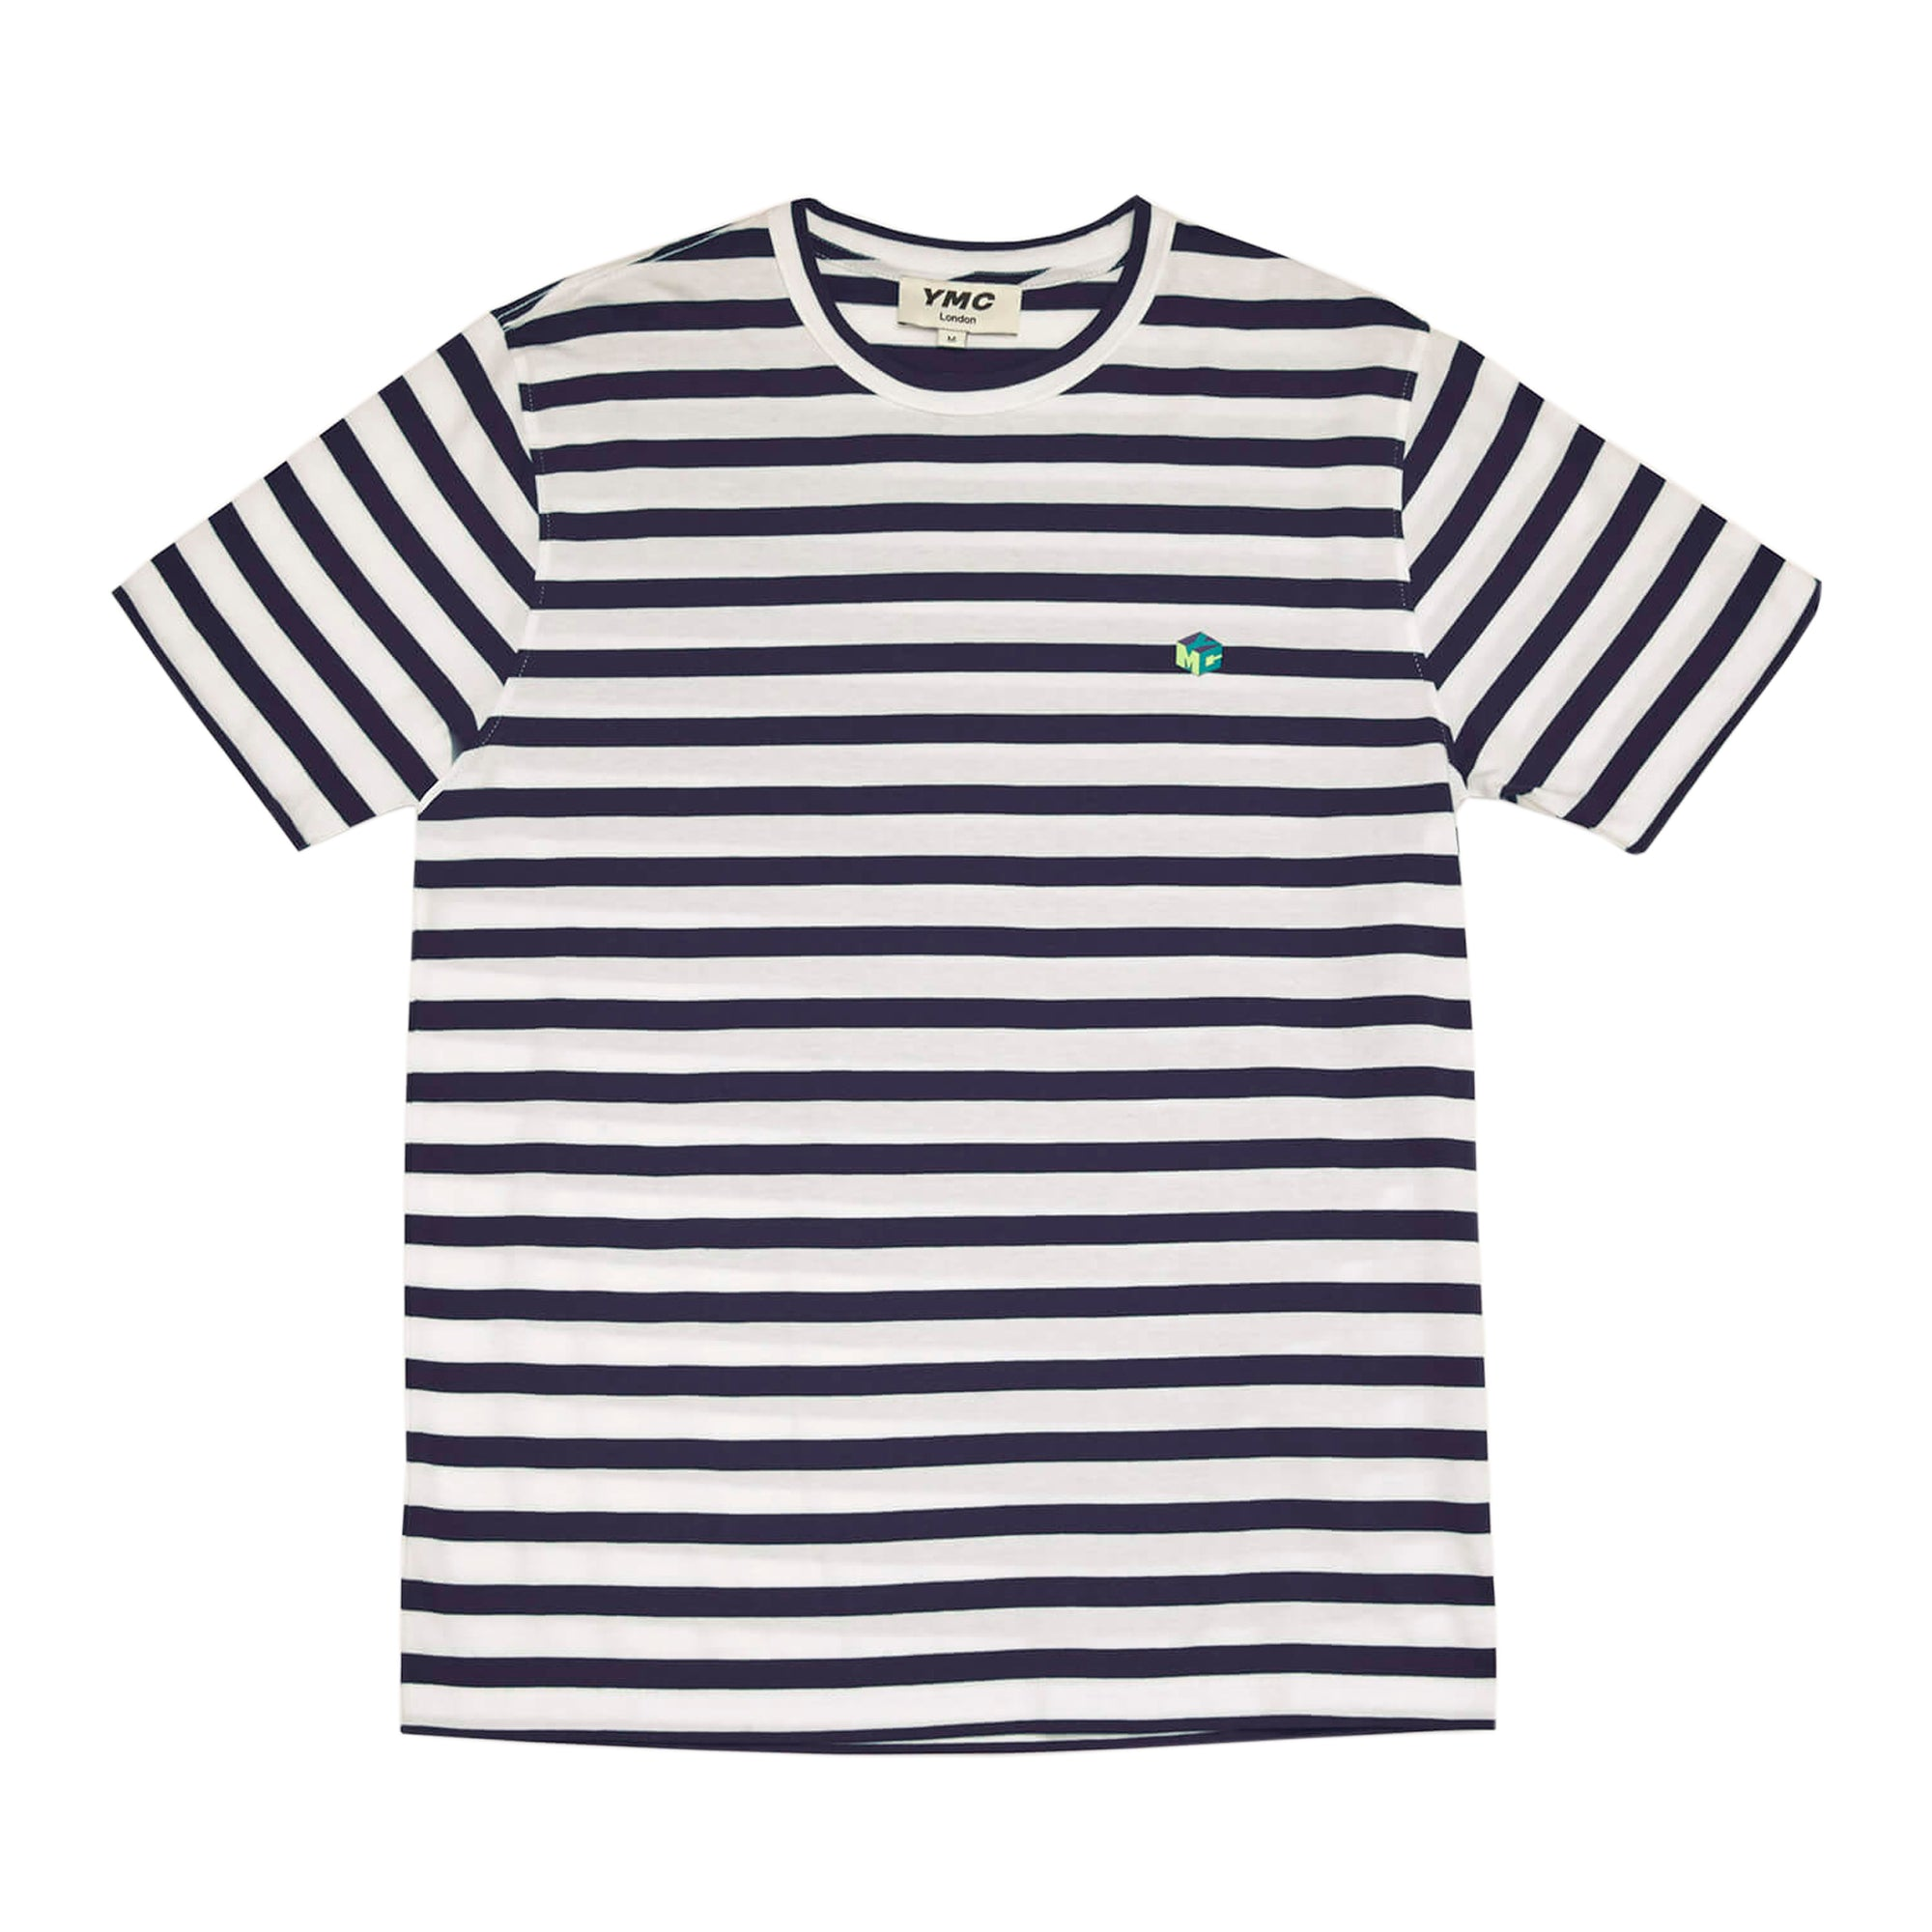 YMC Wild Ones Stripe T-Shirt: Ecru / Navy - The Union Project